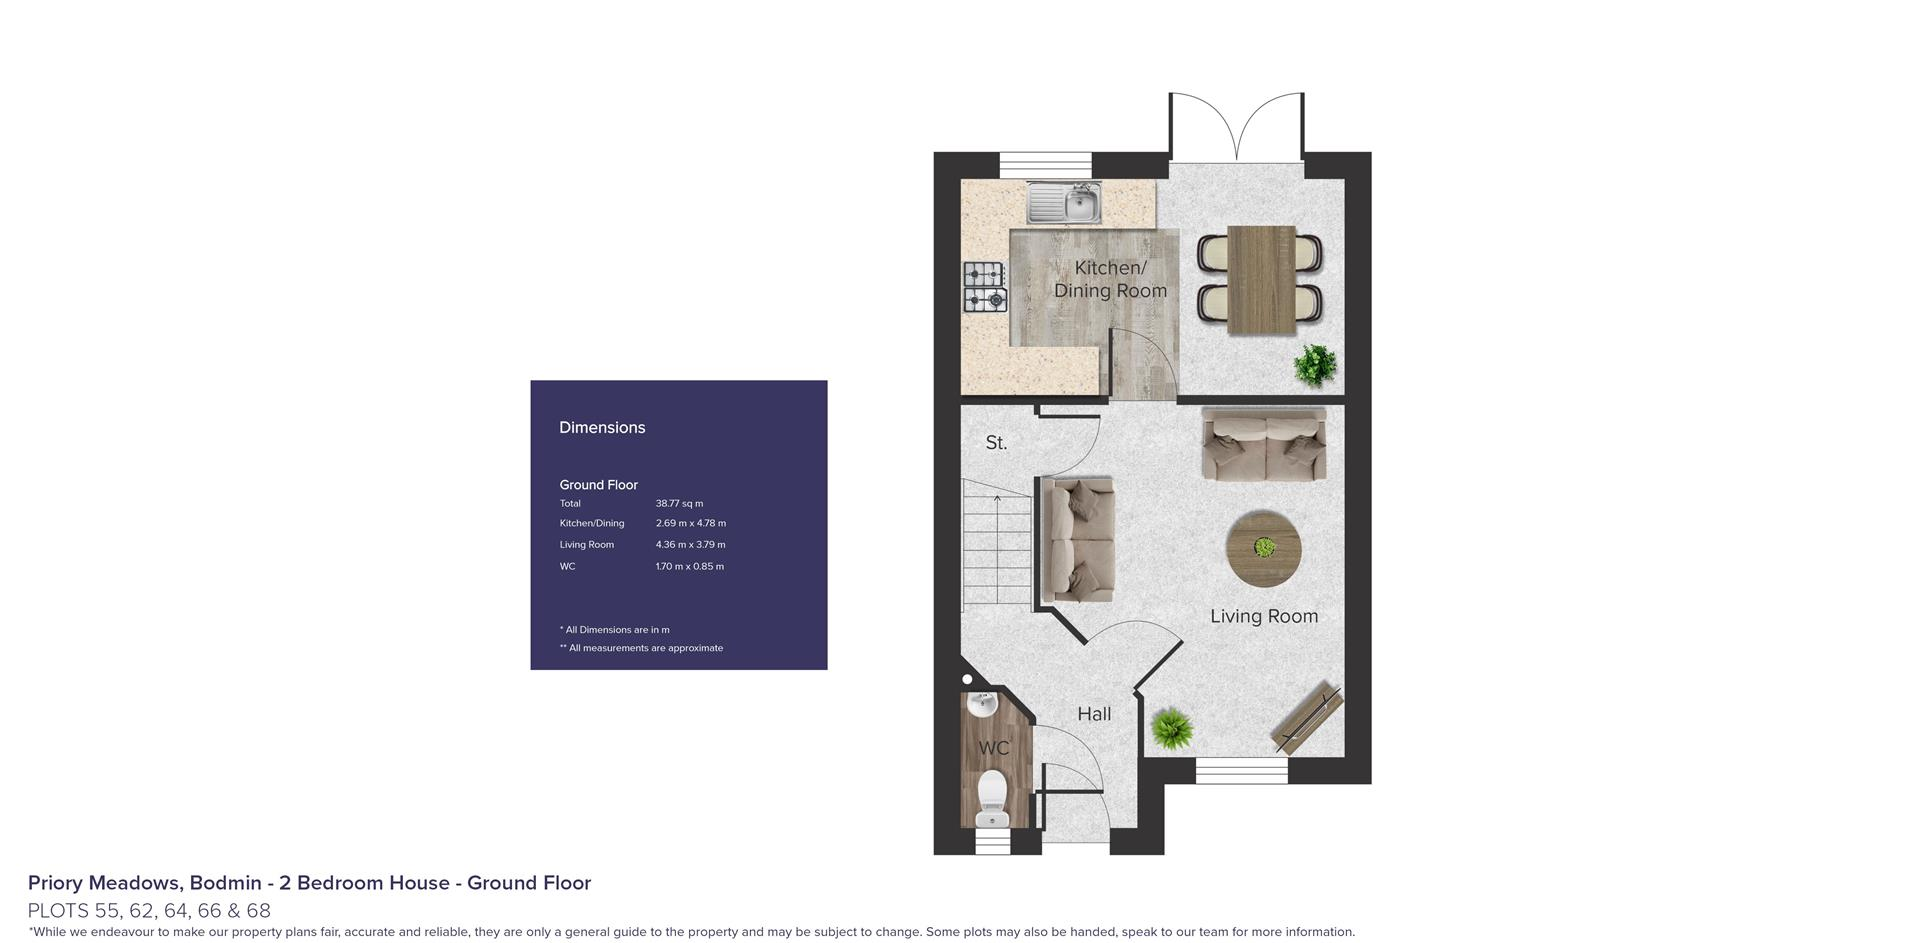 Priory Meadows, Bodmin_Plots 55, 62, 64, 66 & 68_G